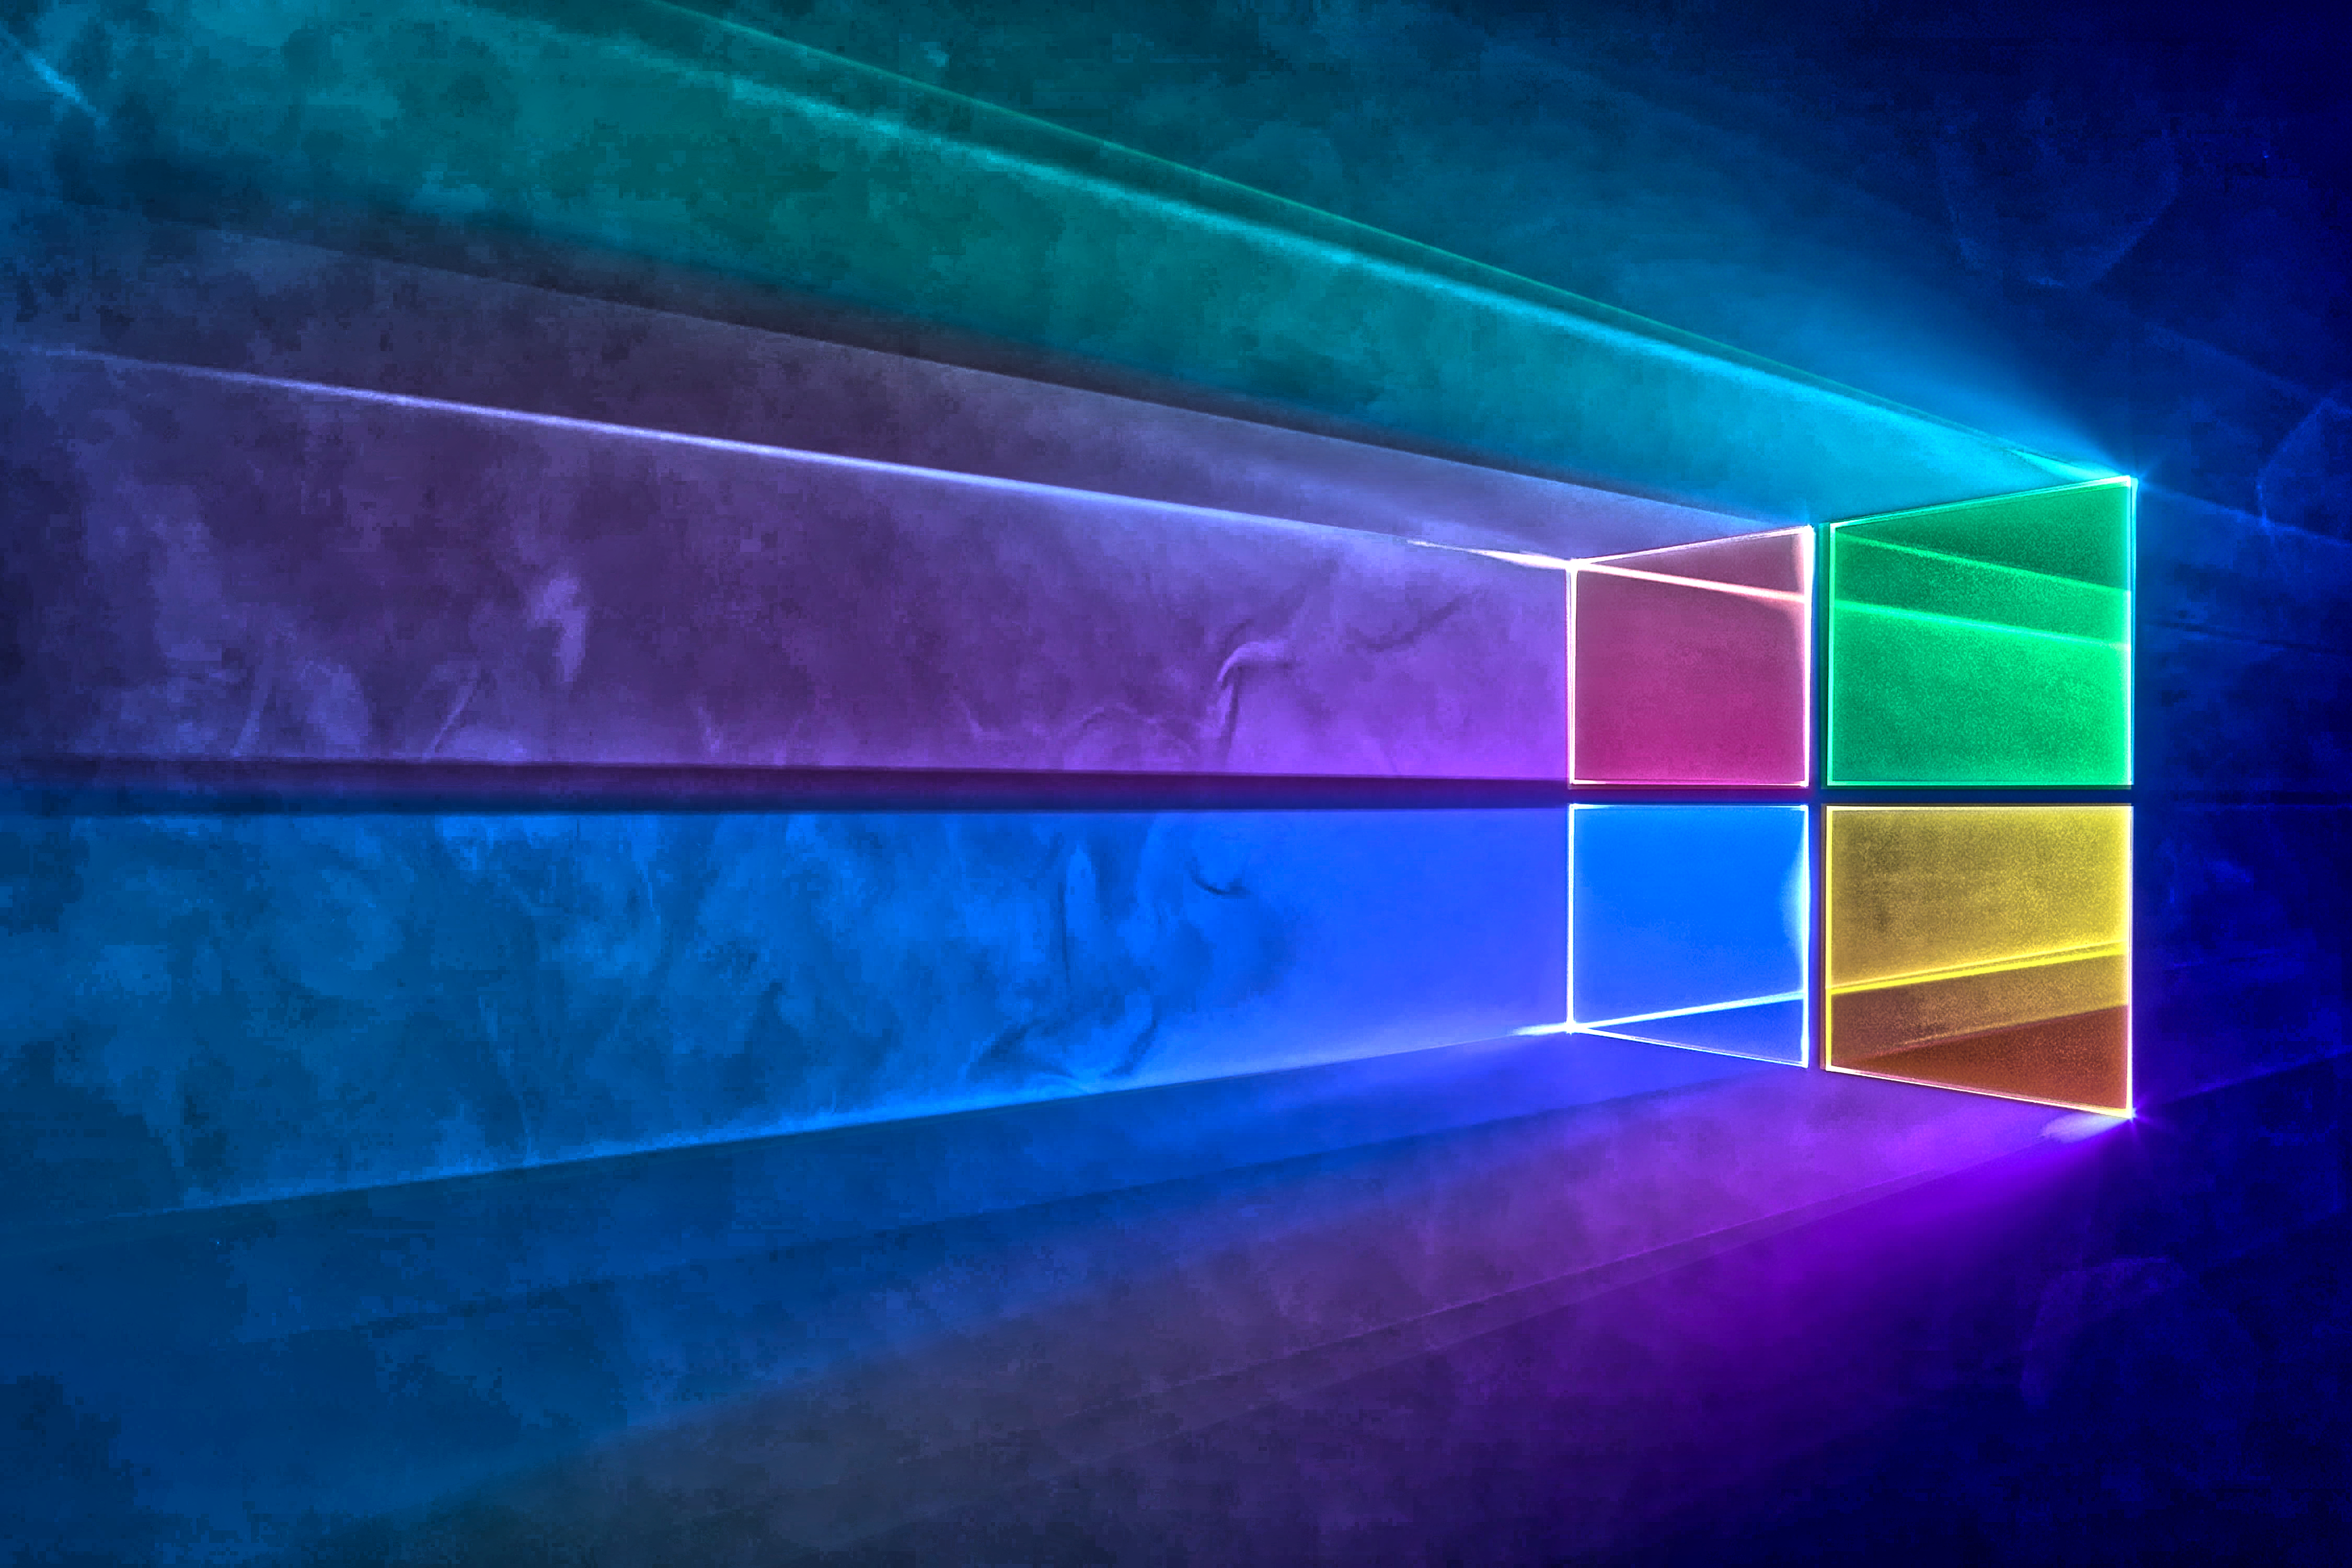 Windows 10 Merge 3840x2160 Wallpaper Windows 10 Windows Wallpaper Microsoft Wallpaper